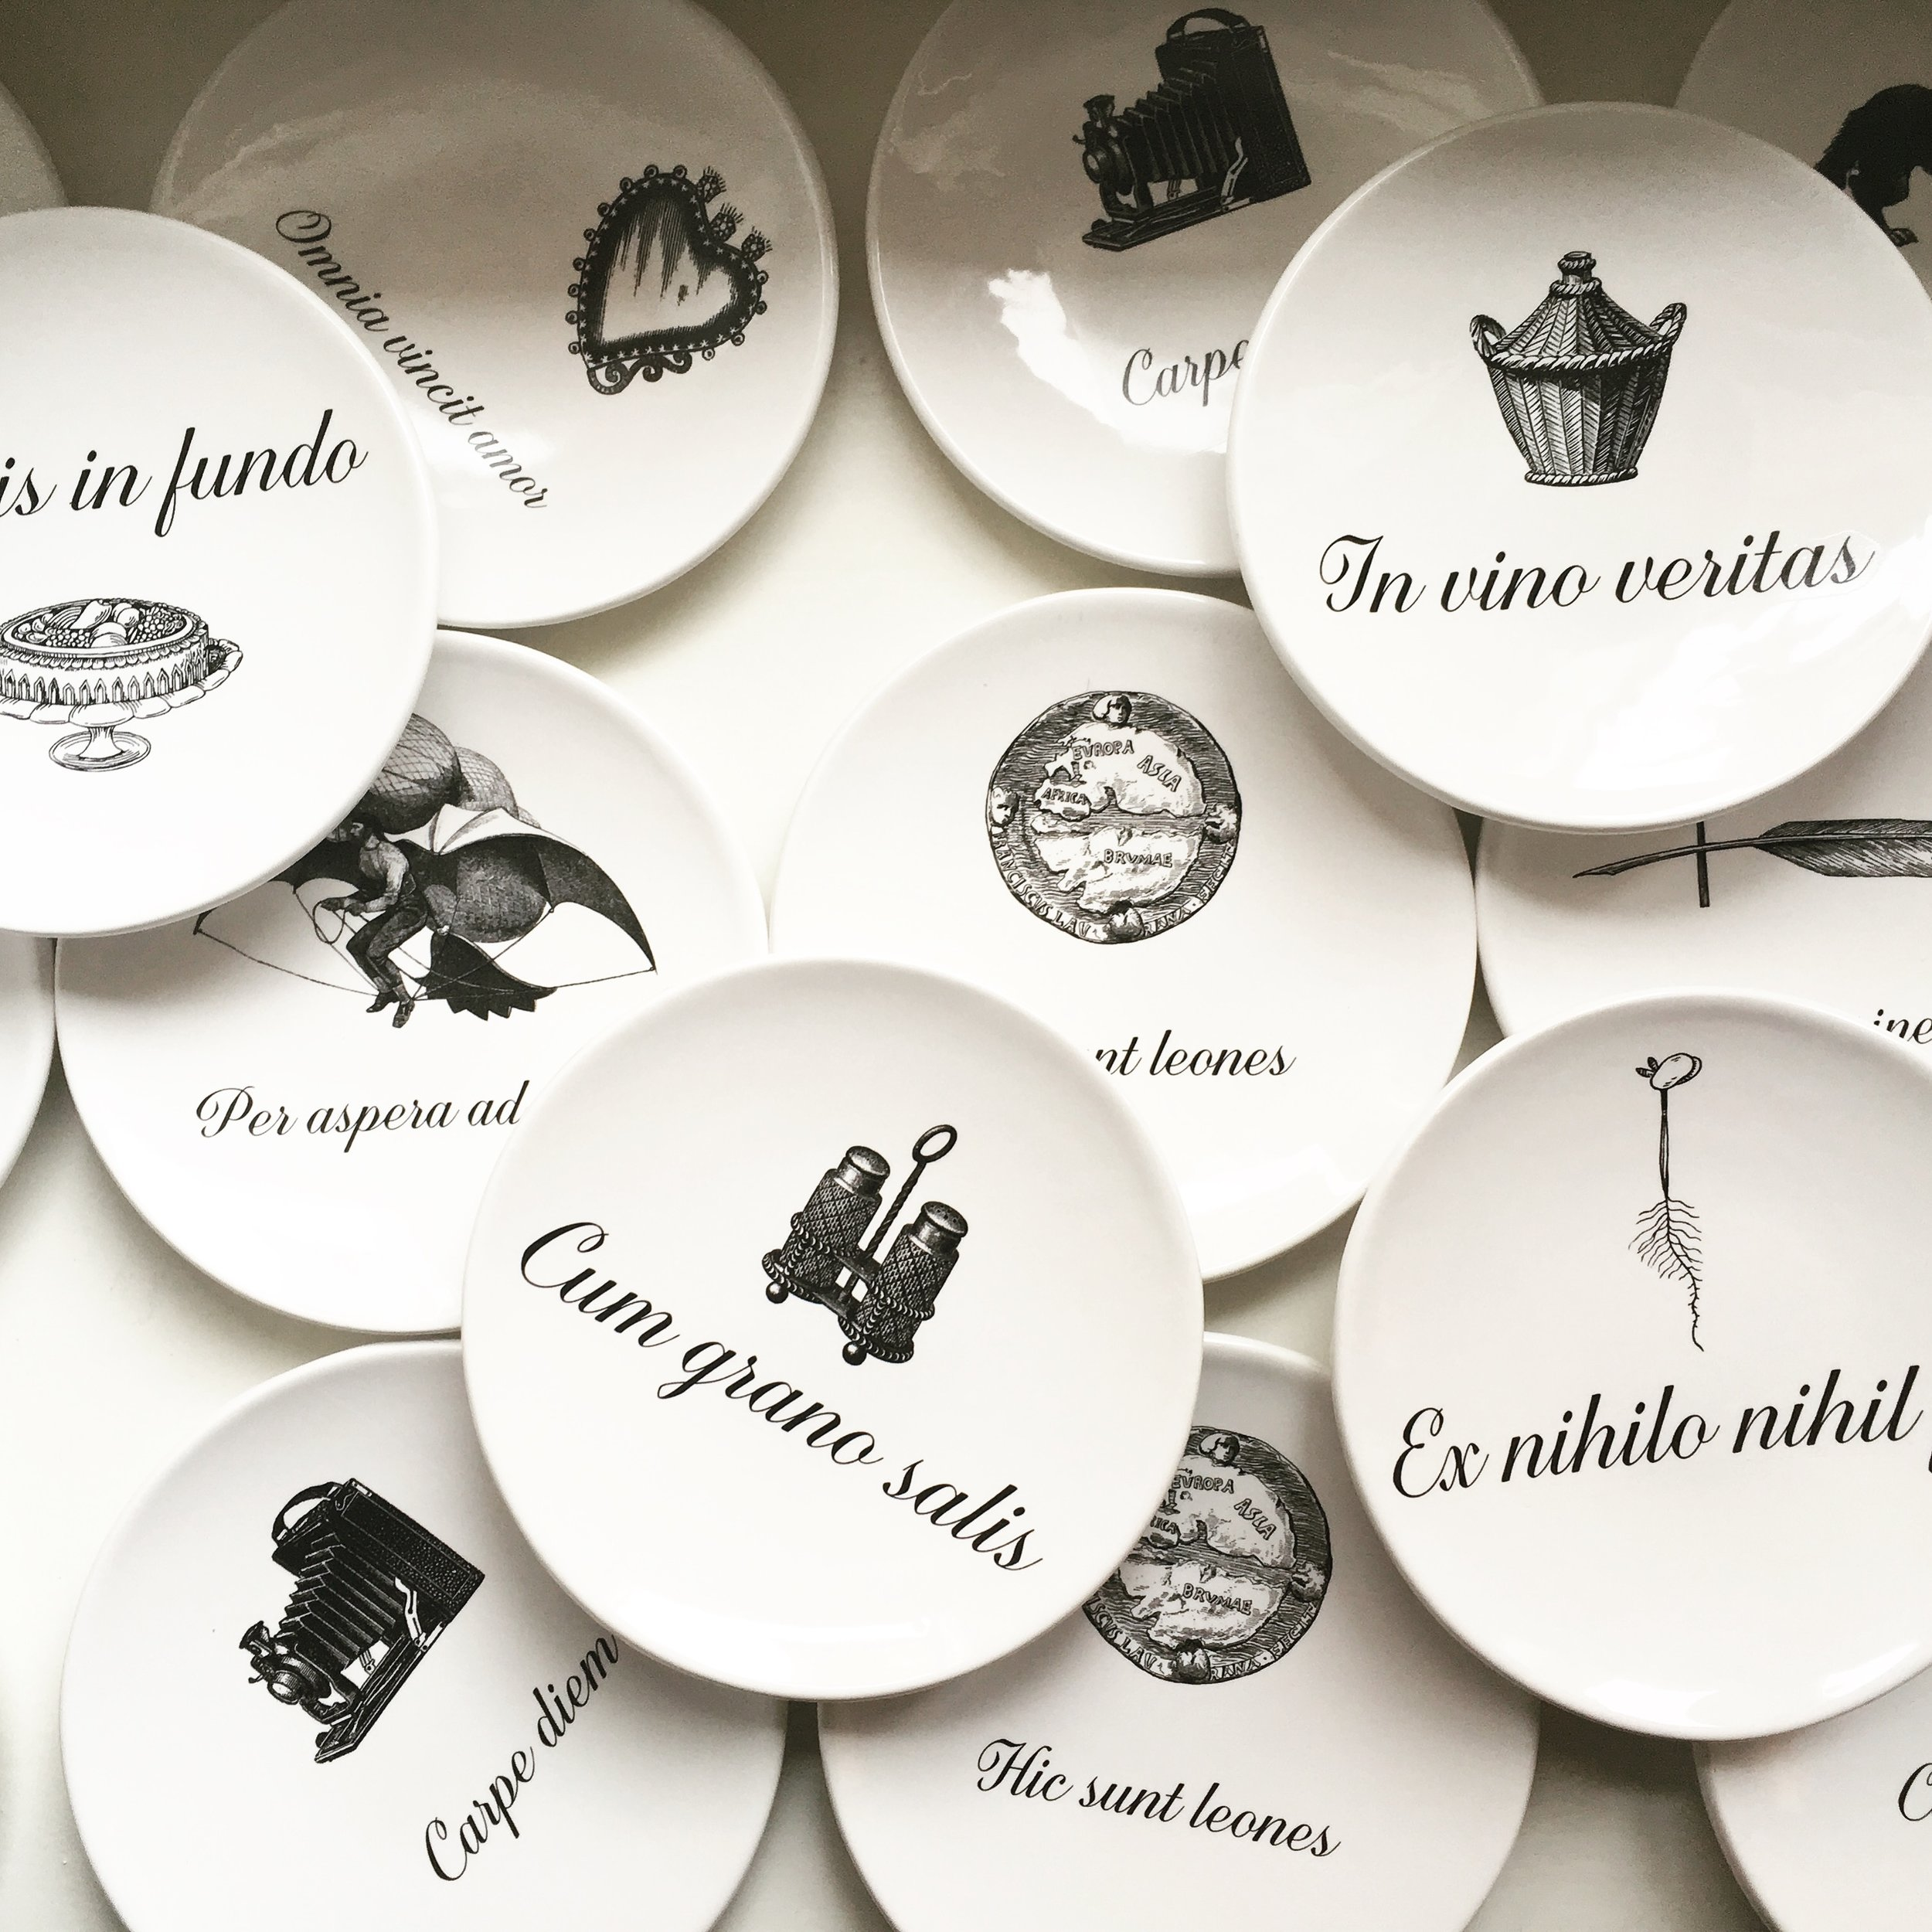 Bespoke order of different designs small plates